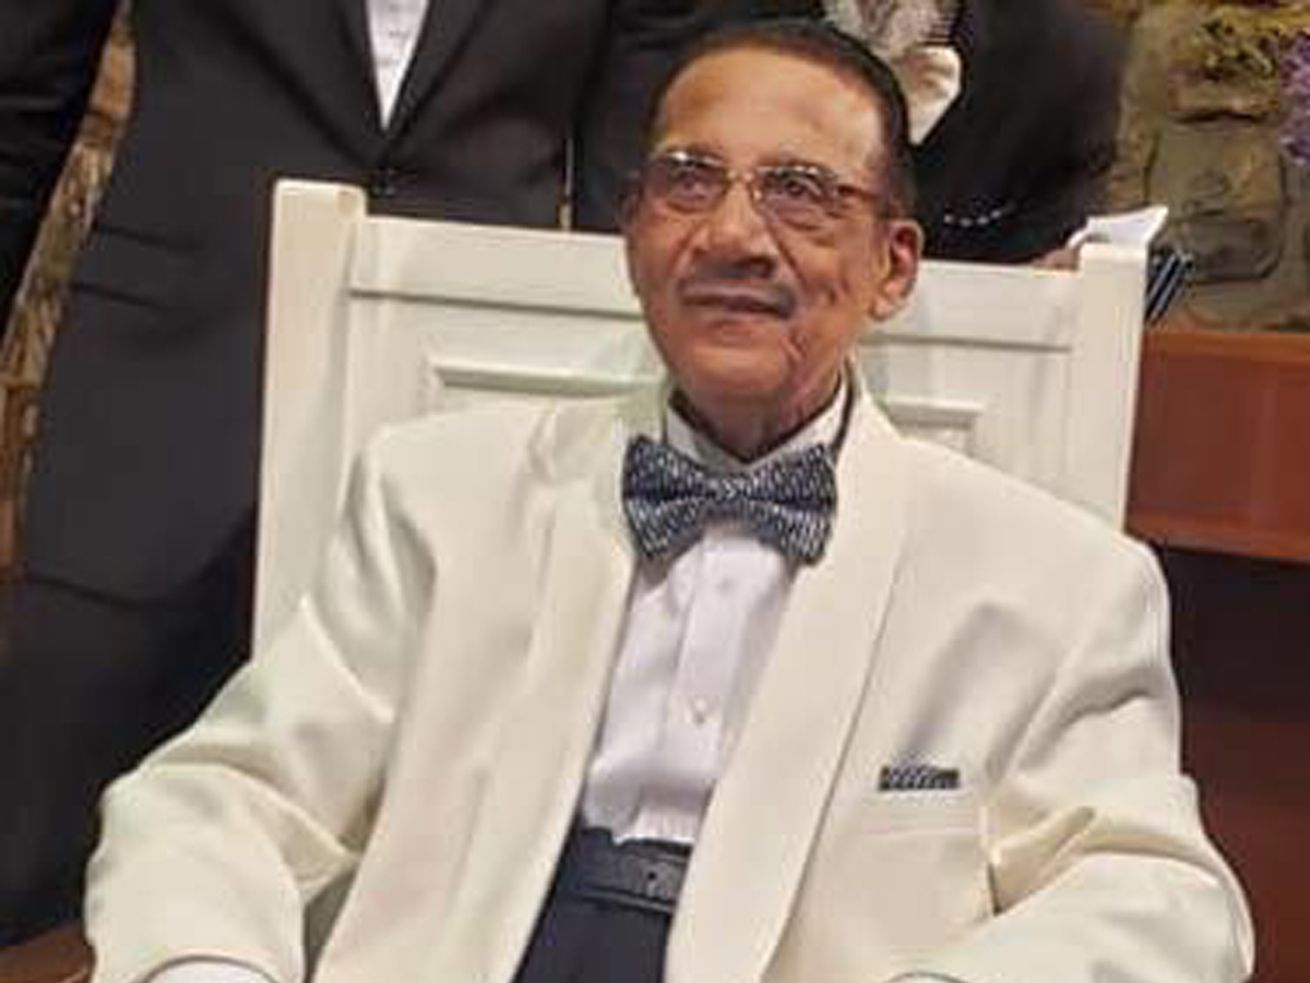 Funeral services are planned Saturday for Pastor Maceo Woods, a respected figure in gospel music and founder of Chicago's Christian Tabernacle Church at 47th and Prairie.